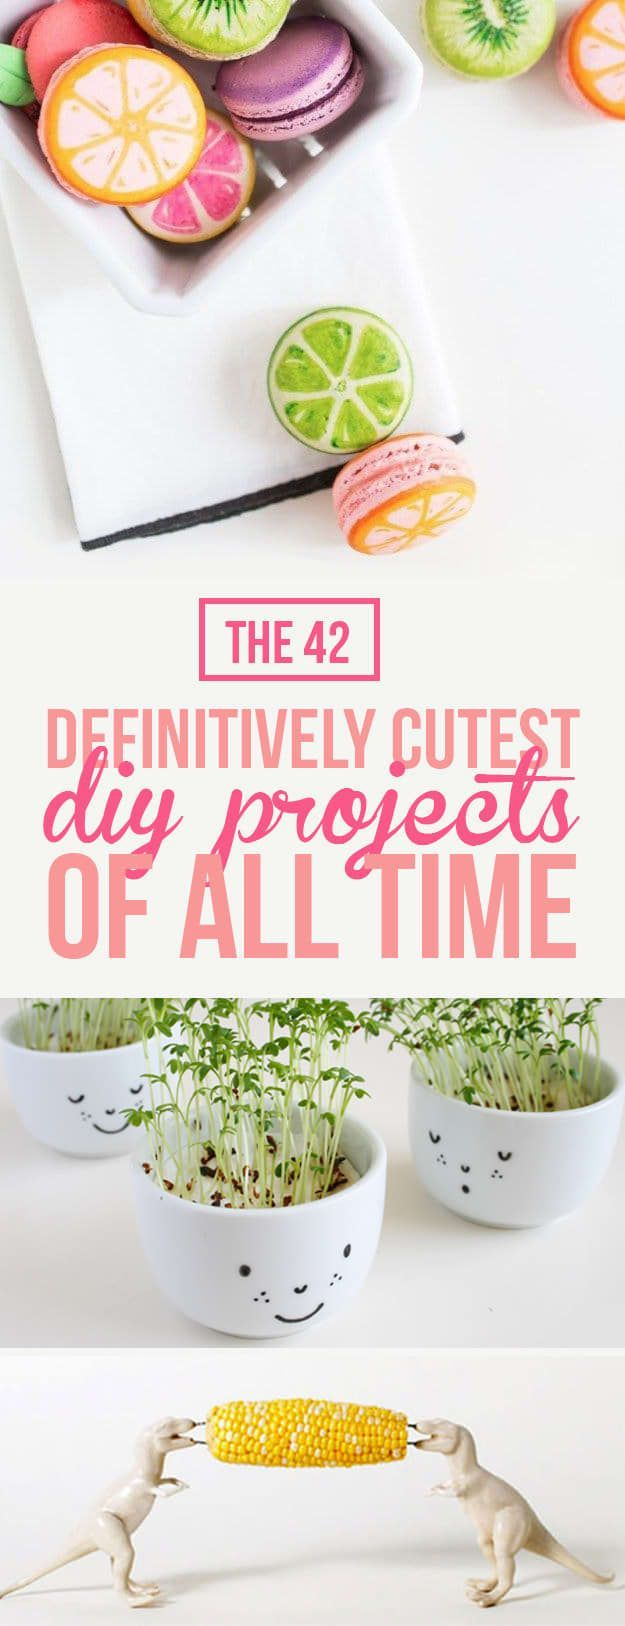 The 42 Definitively Cutest DIY Projects for Kids | There's a reason why kawaii rhymes with DIY.